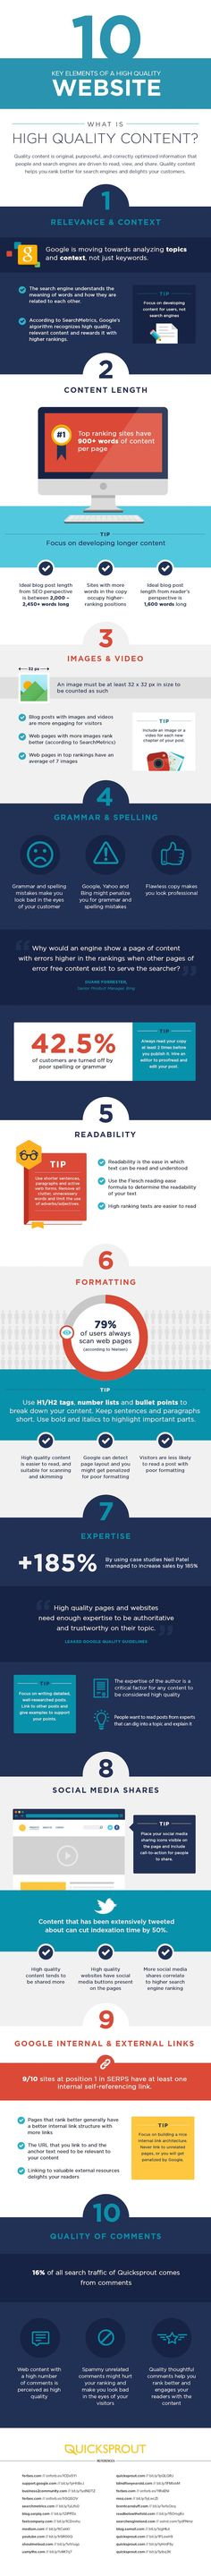 The 10 Key Elements of a High Quality Website - #infographic #counseling #socialmedia